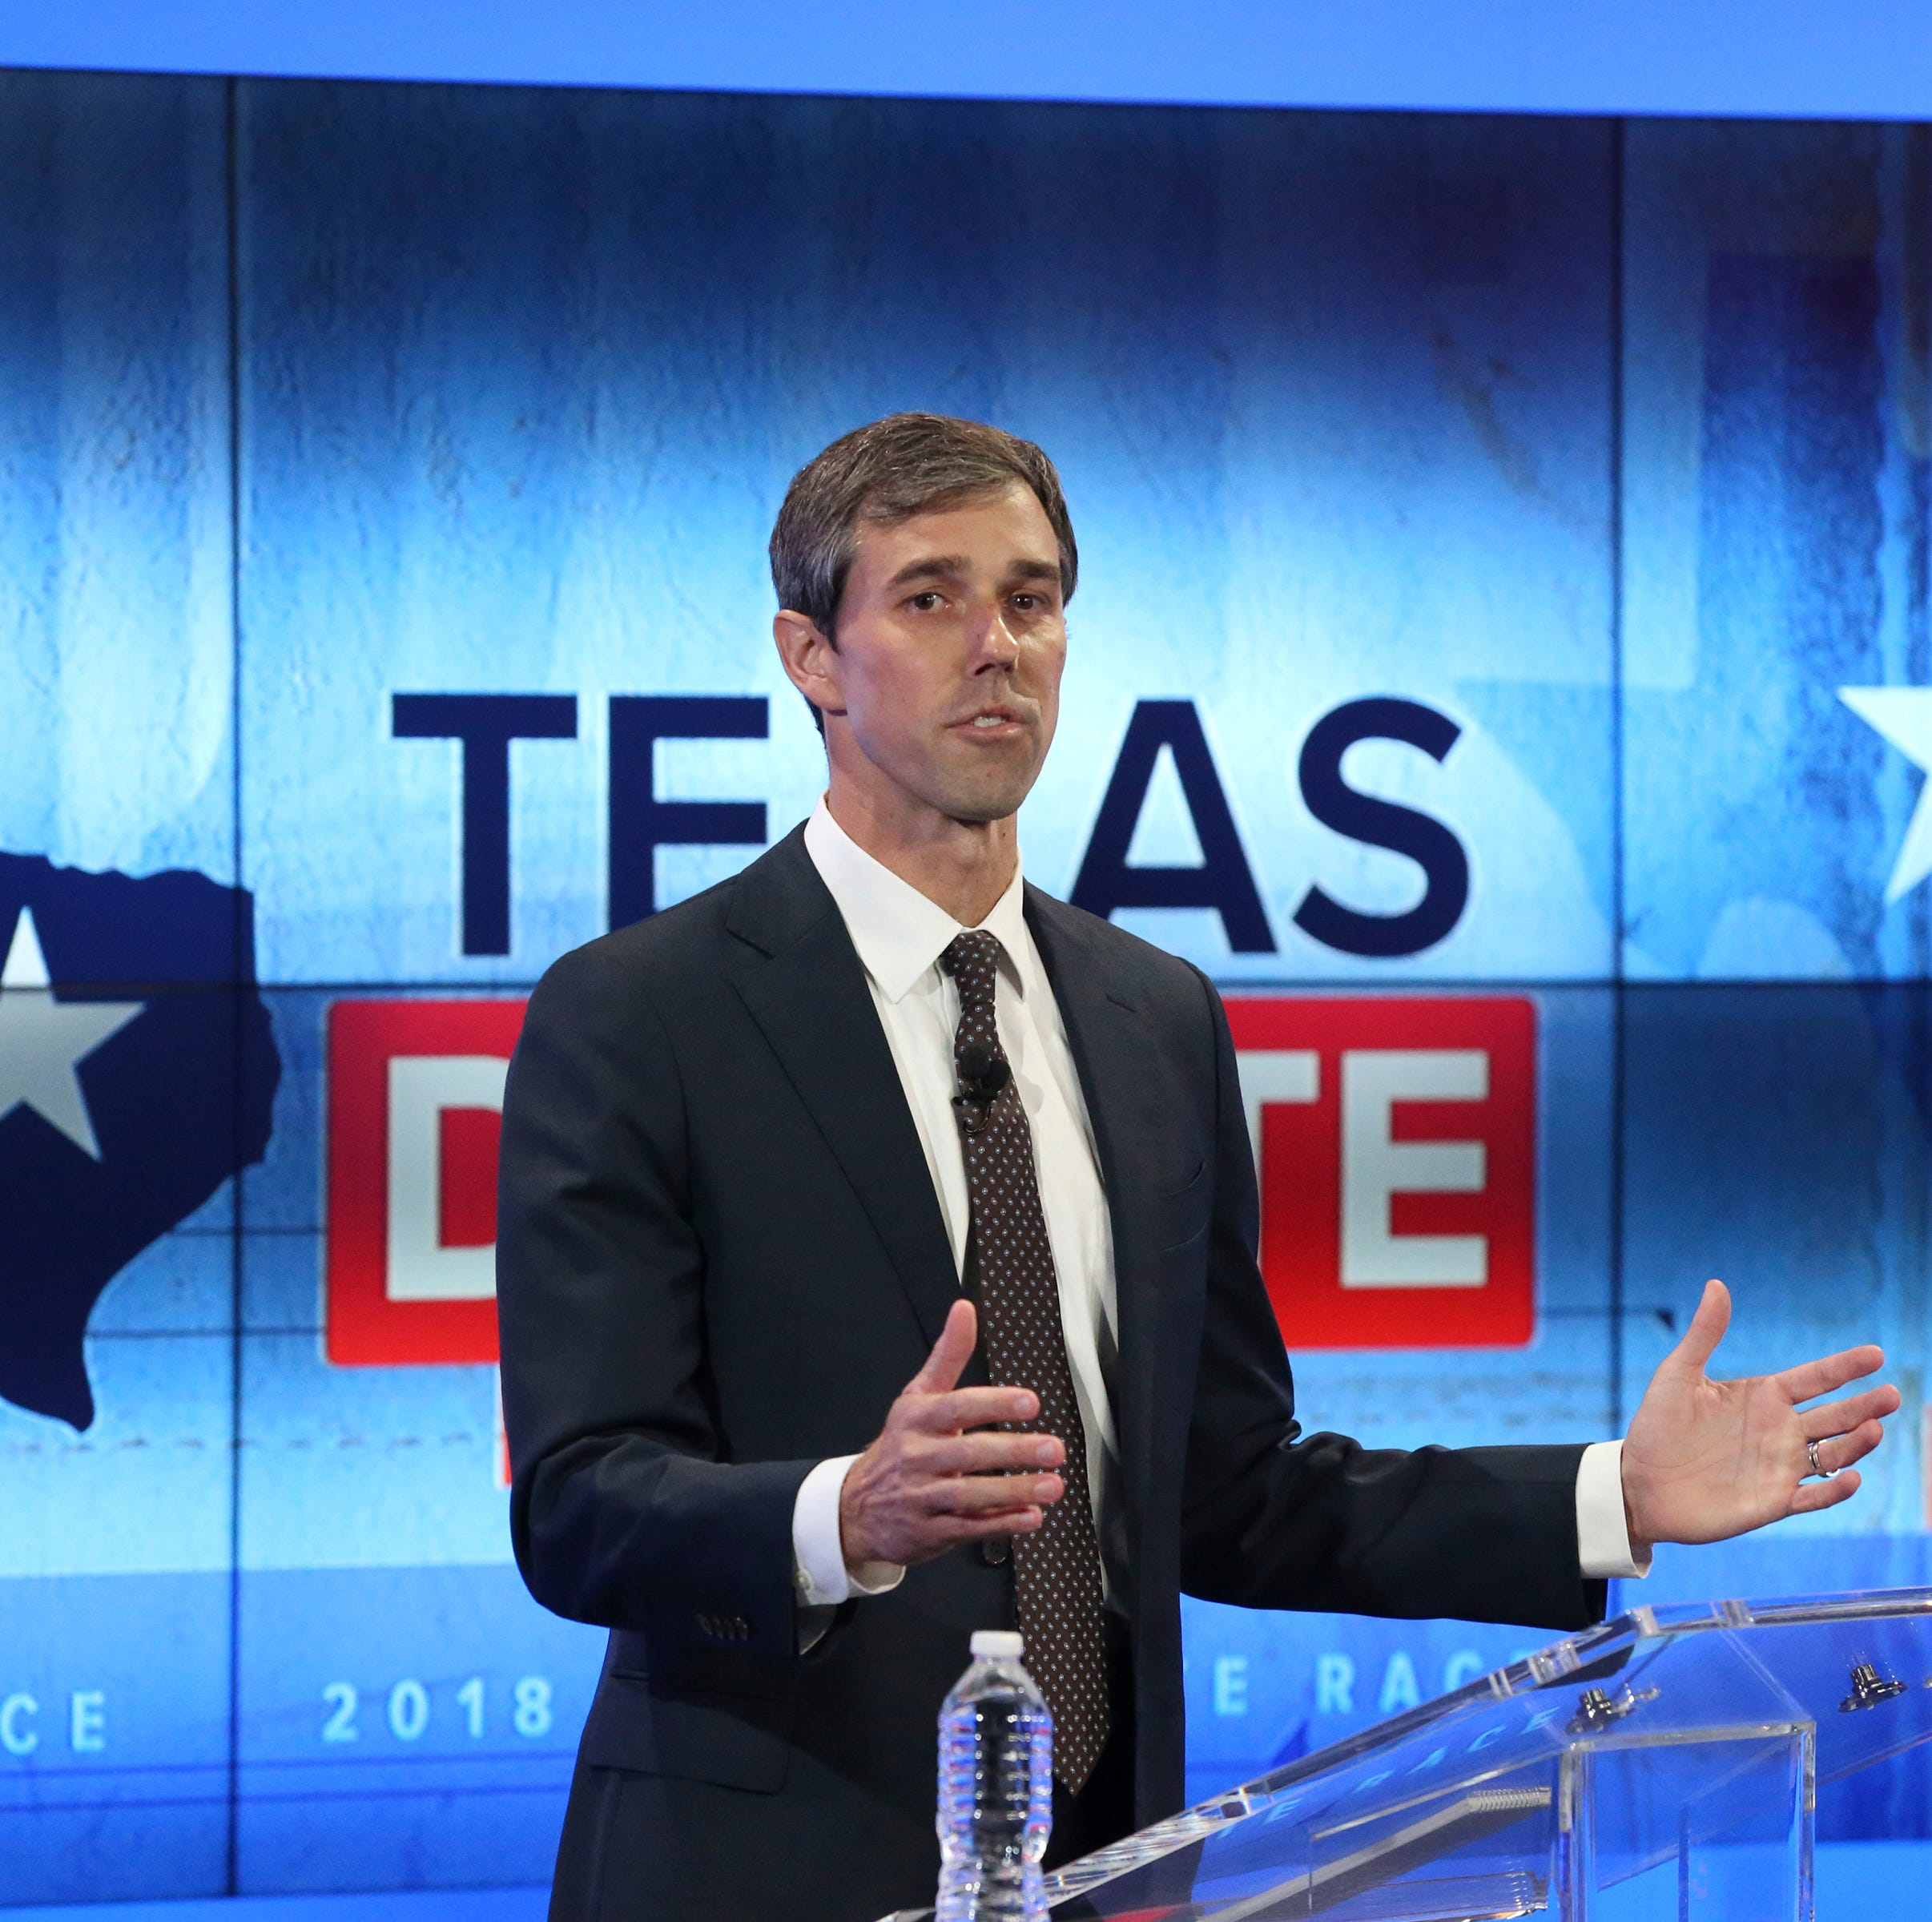 Beto CNN town hall: O'Rourke regrets using 'Lyin' Ted', rules out president run